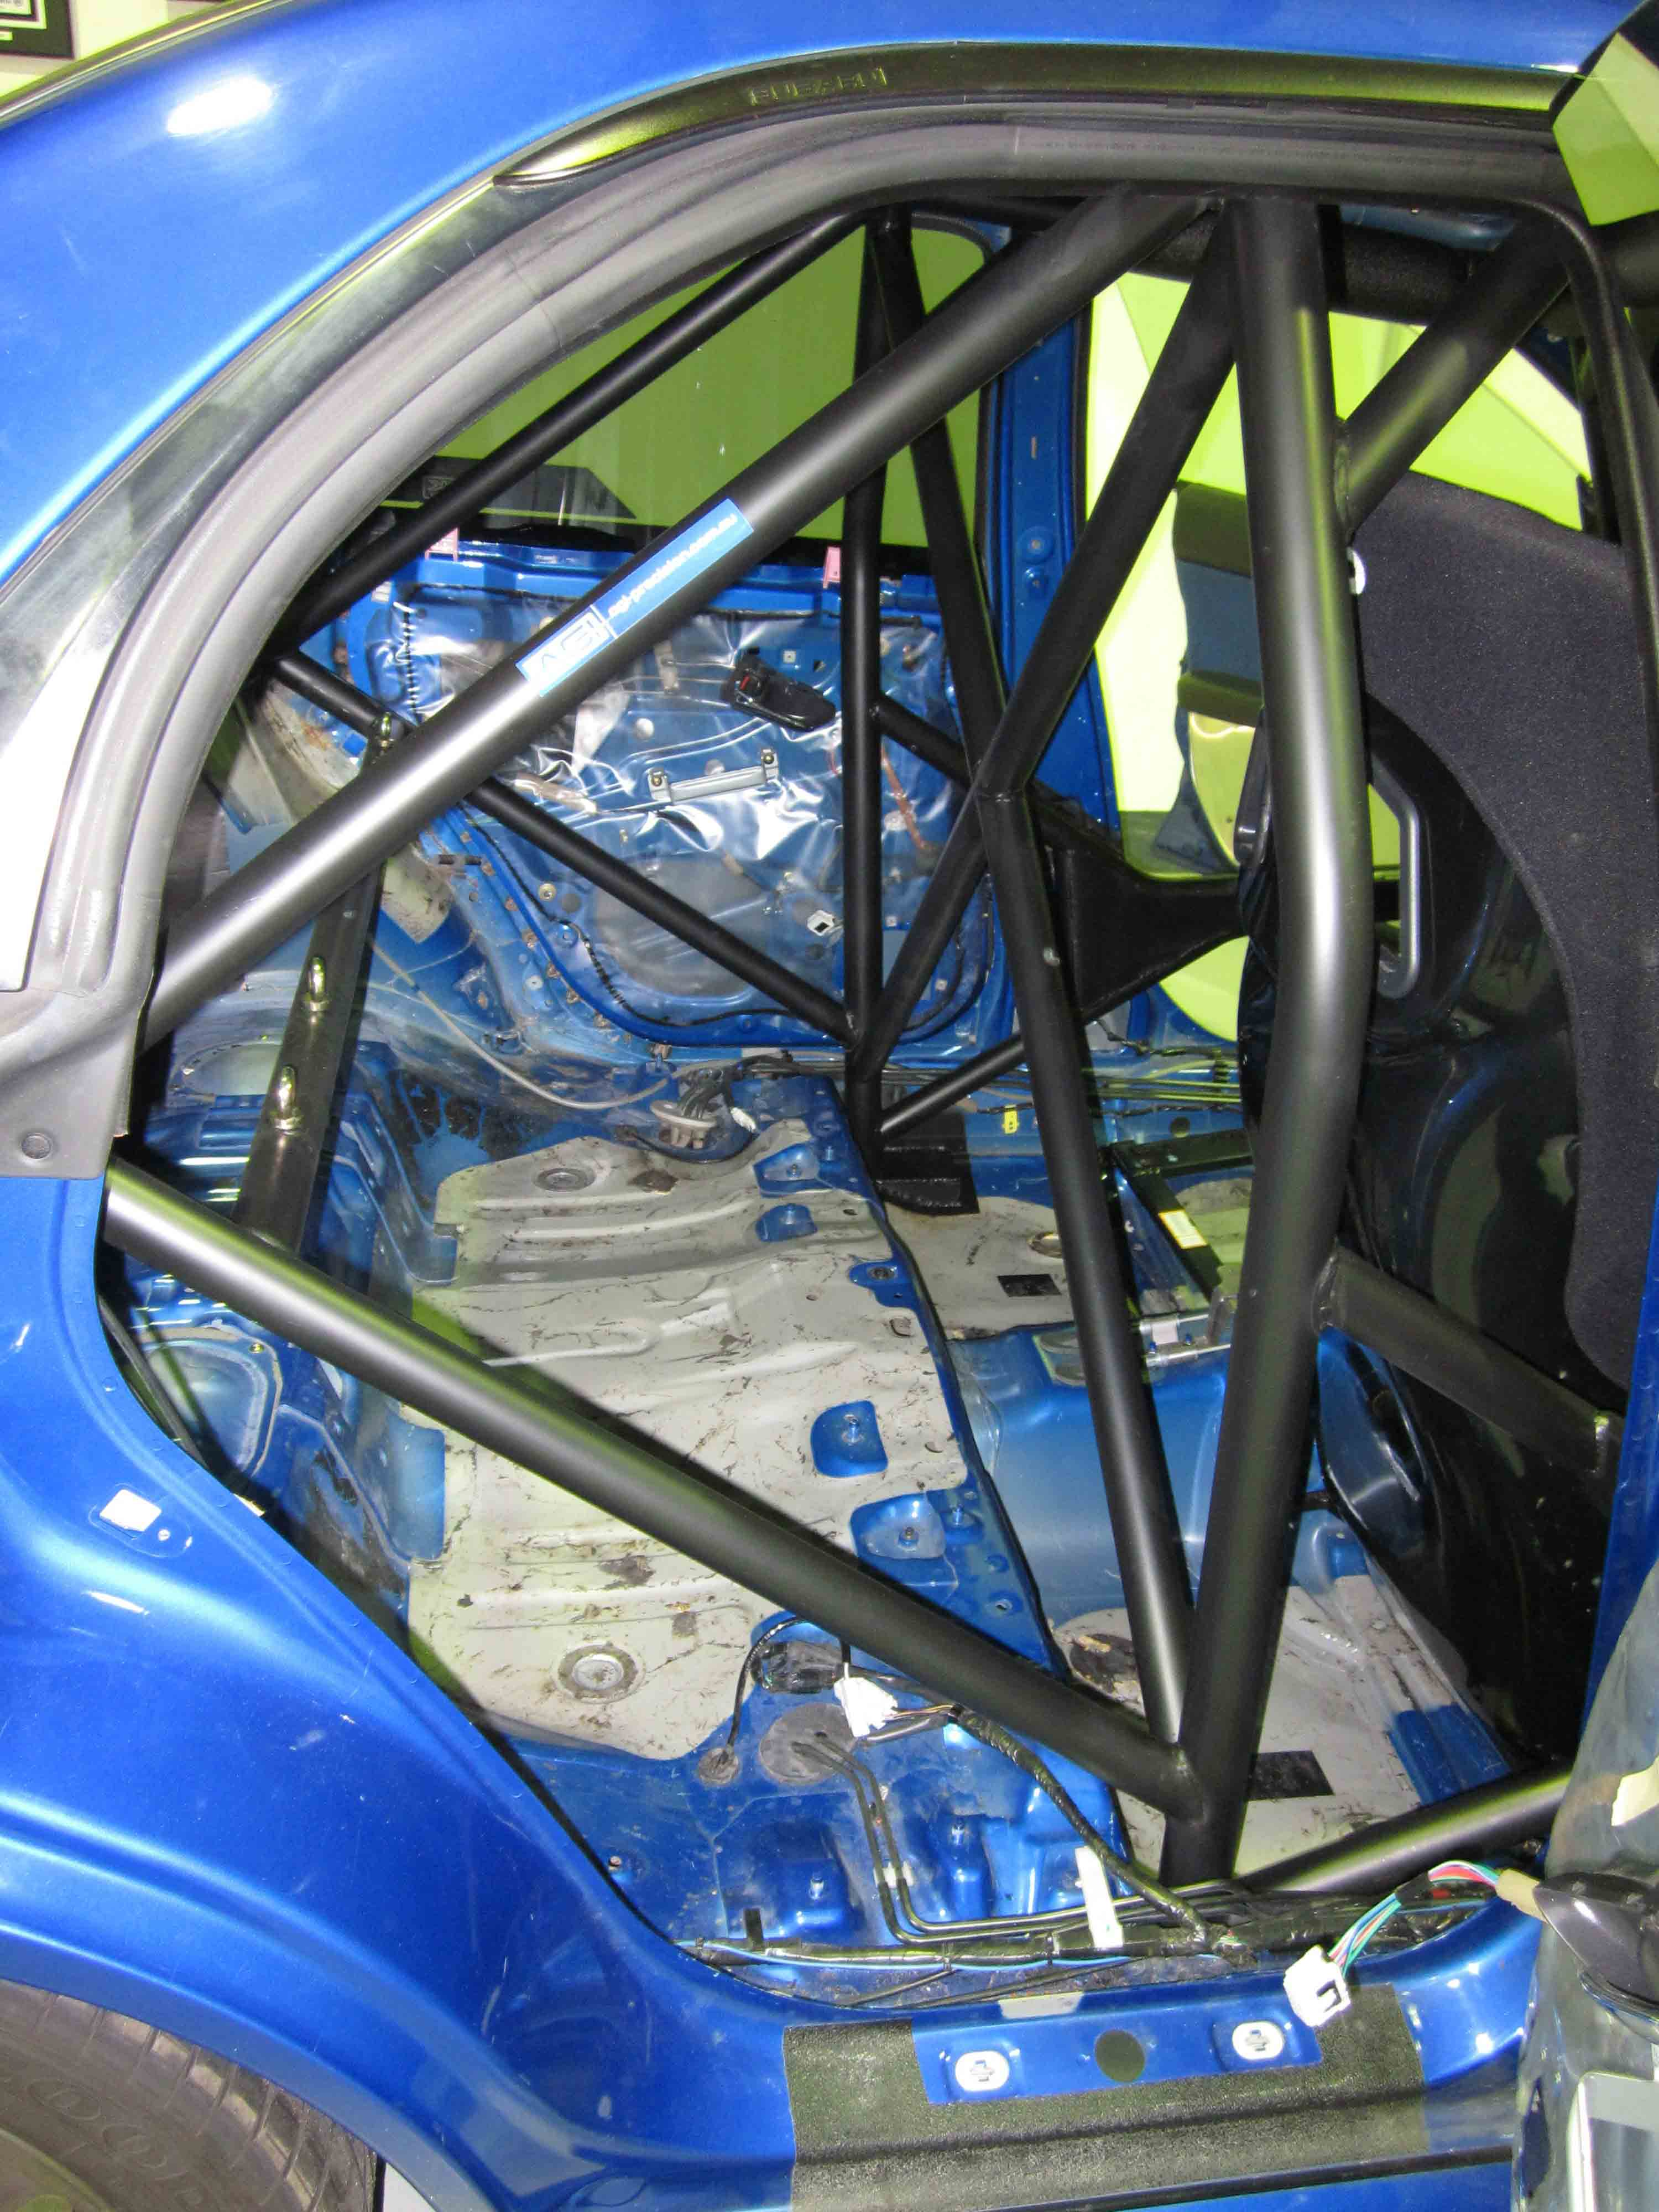 Subaru Wrx Gd Cams Weld In Roll Cage Agi Roll Cages